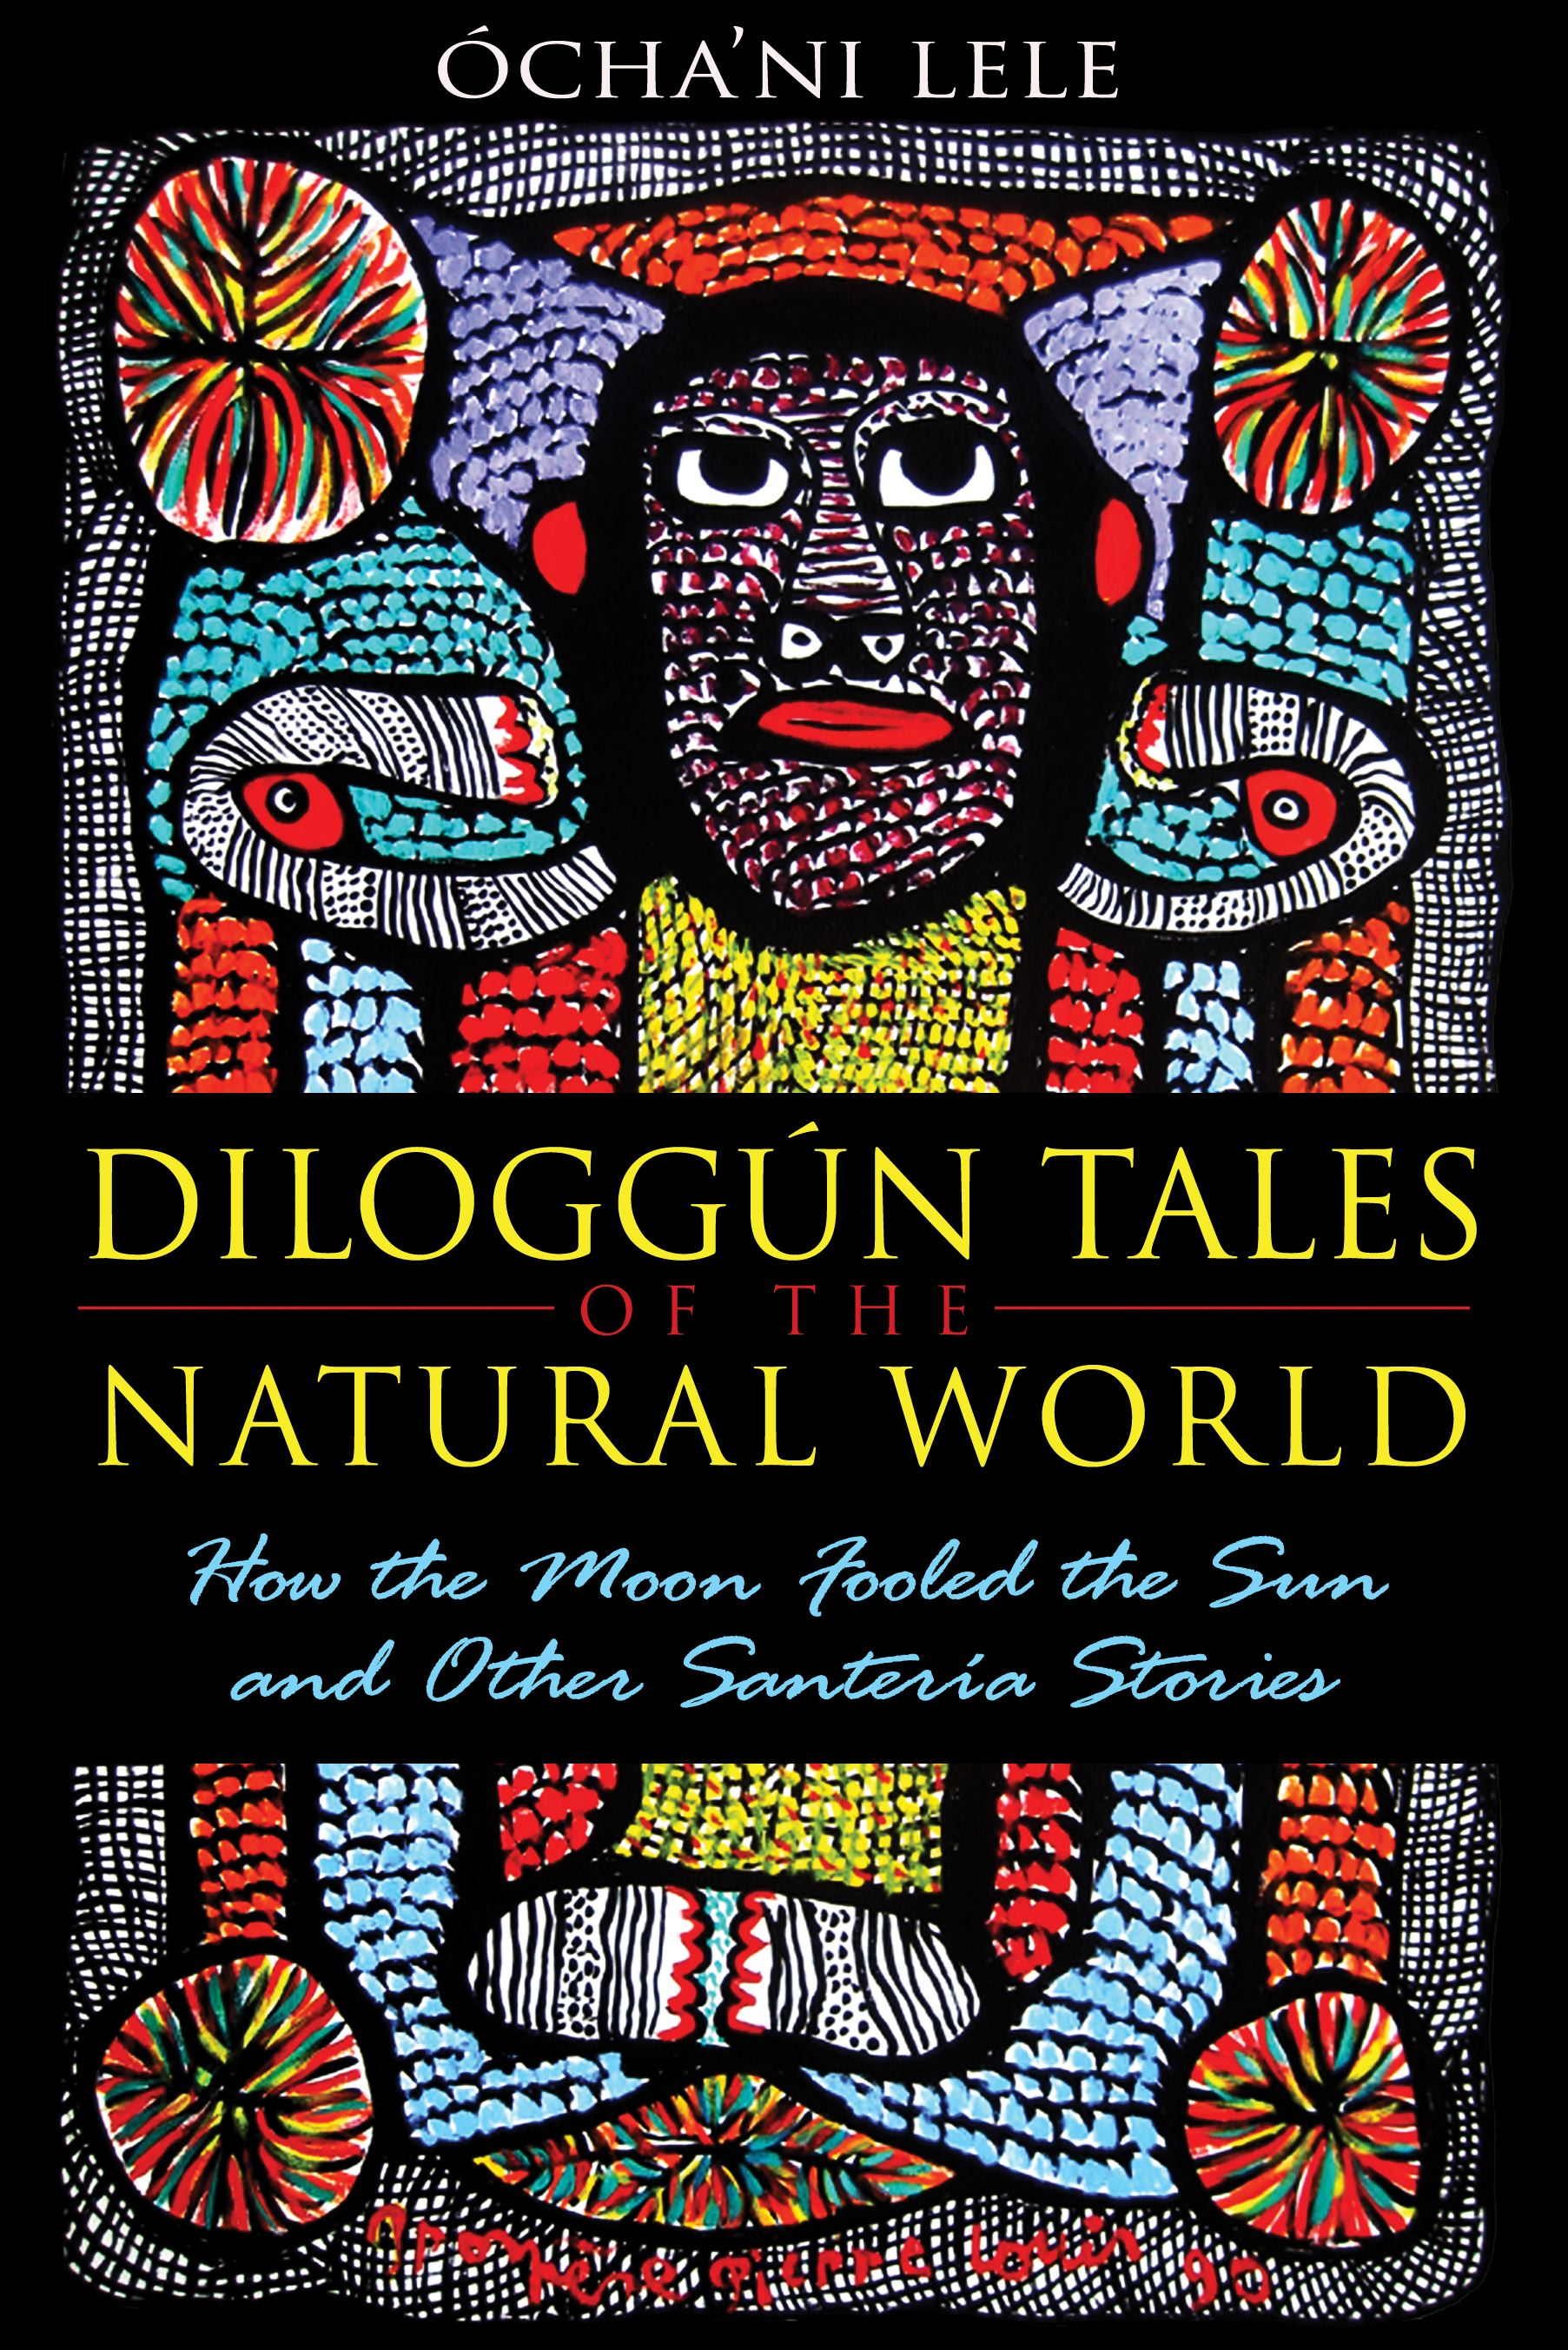 Diloggun tales of the natural world 9781594774195 hr